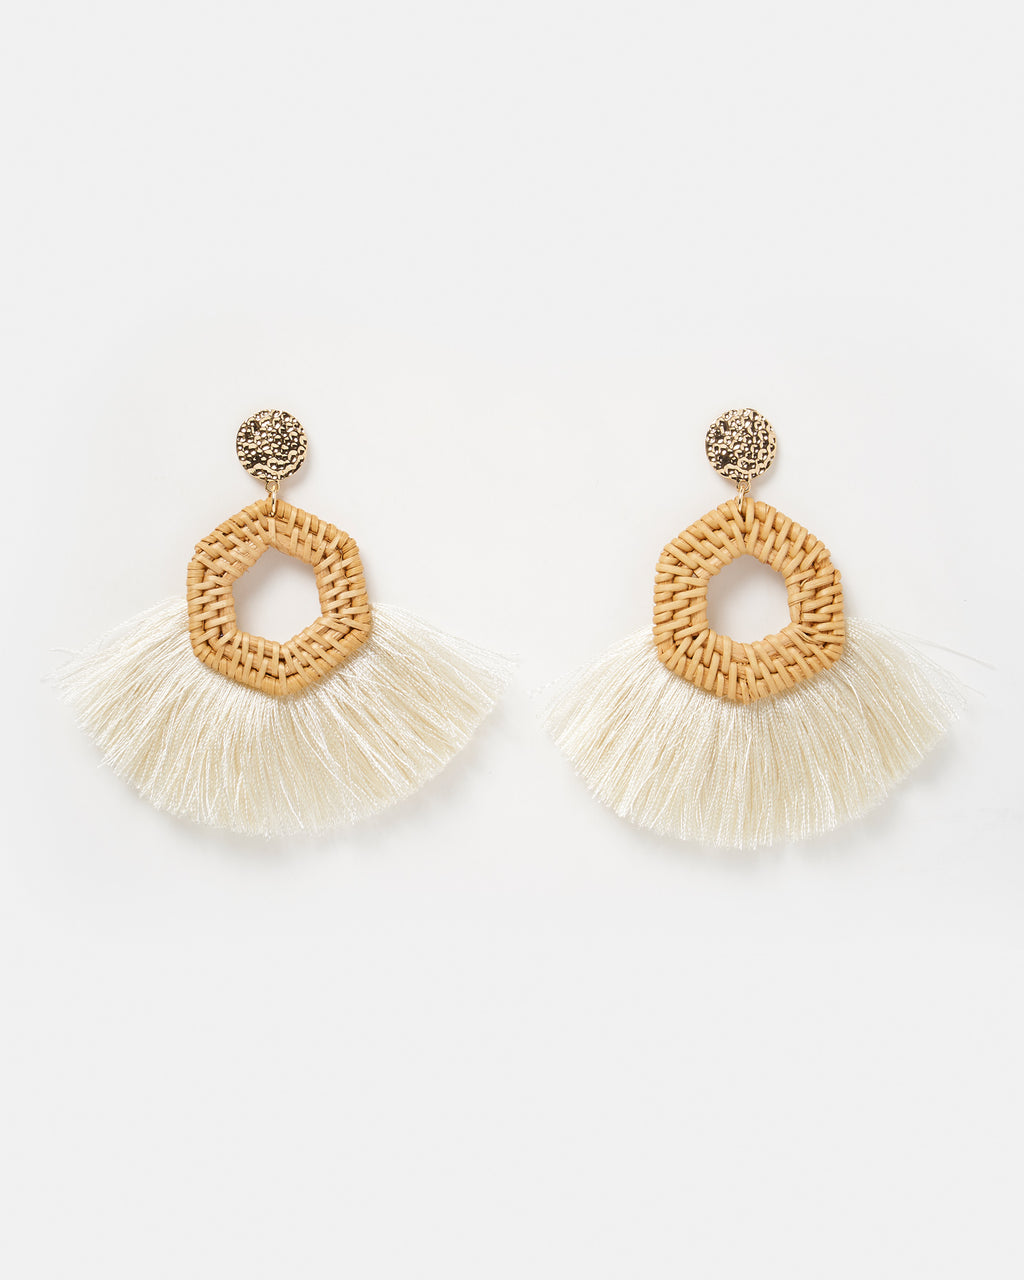 Izoa Indigo Earrings Beige